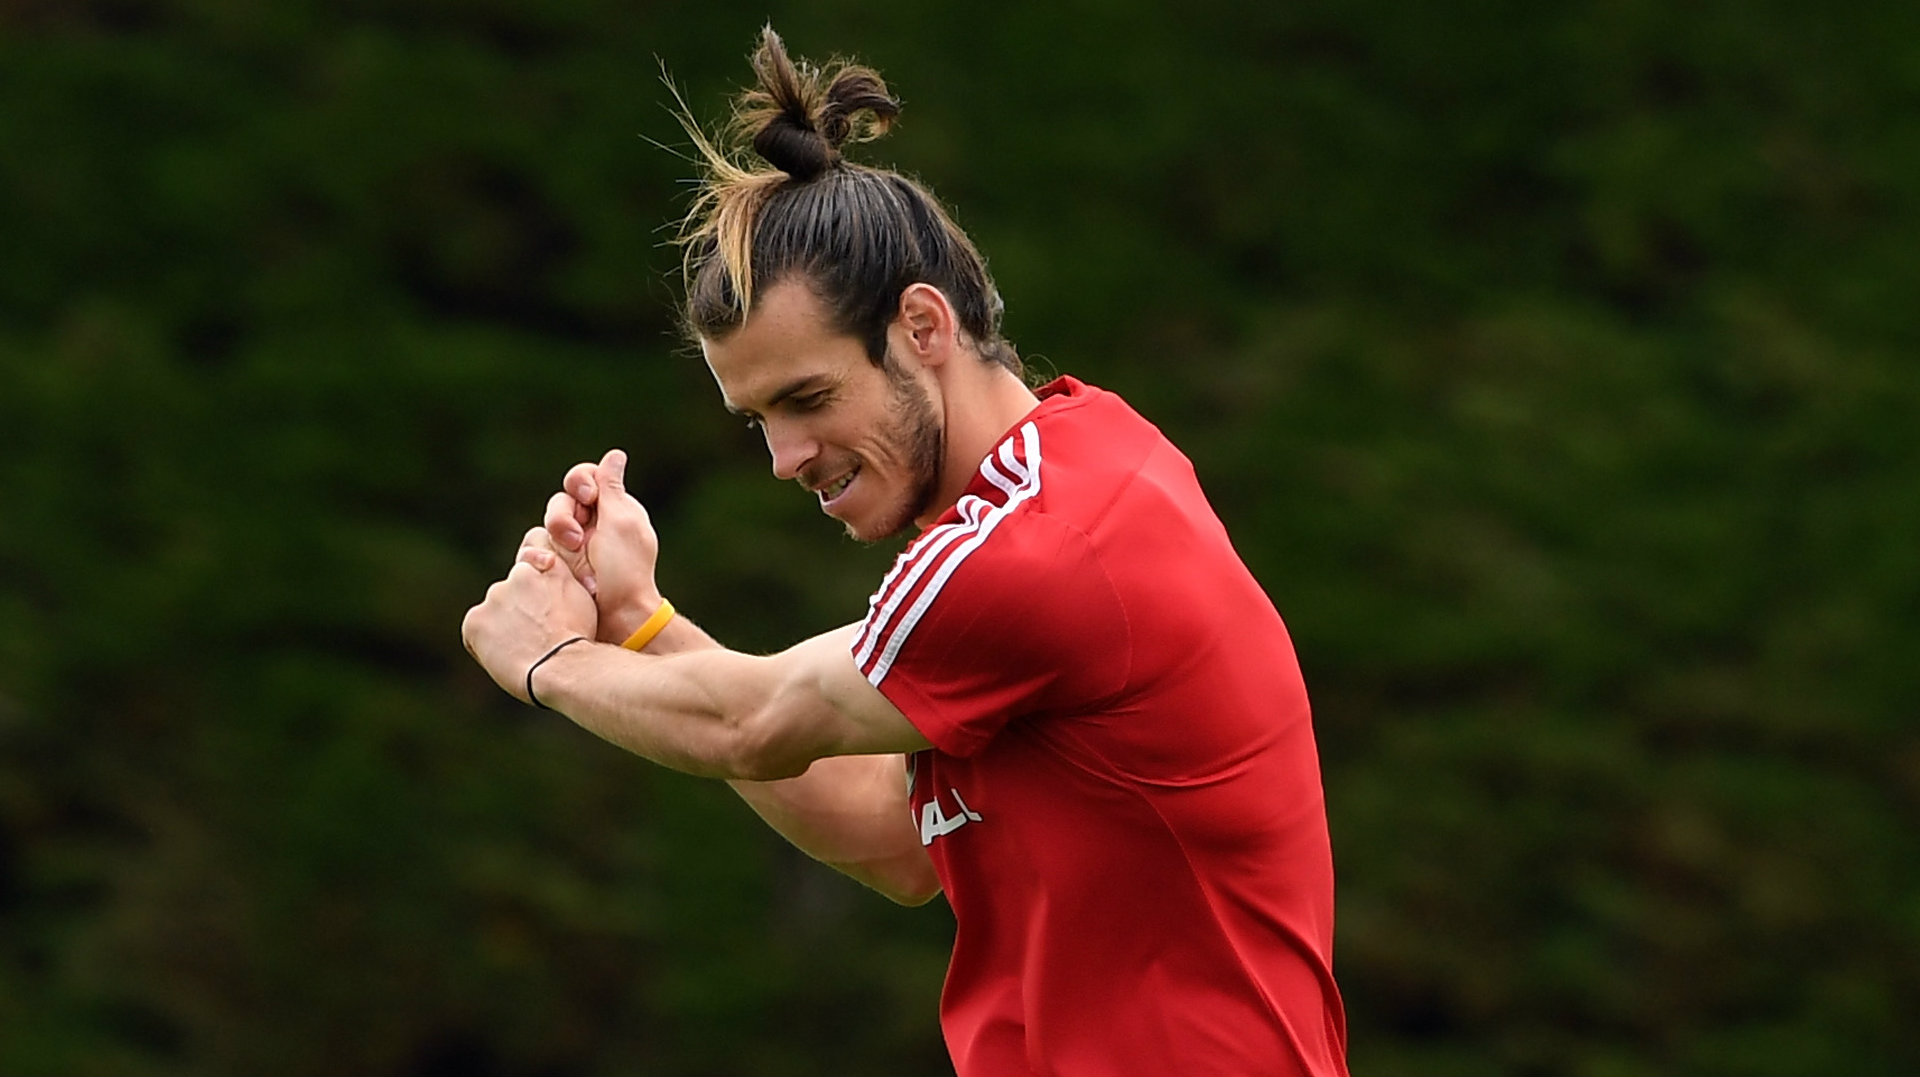 RYAN GIGGS SAYS NO GOLF TO GARETH BALE AHEAD OF EURO 2020 CAMPAIGN - Bóng Đá